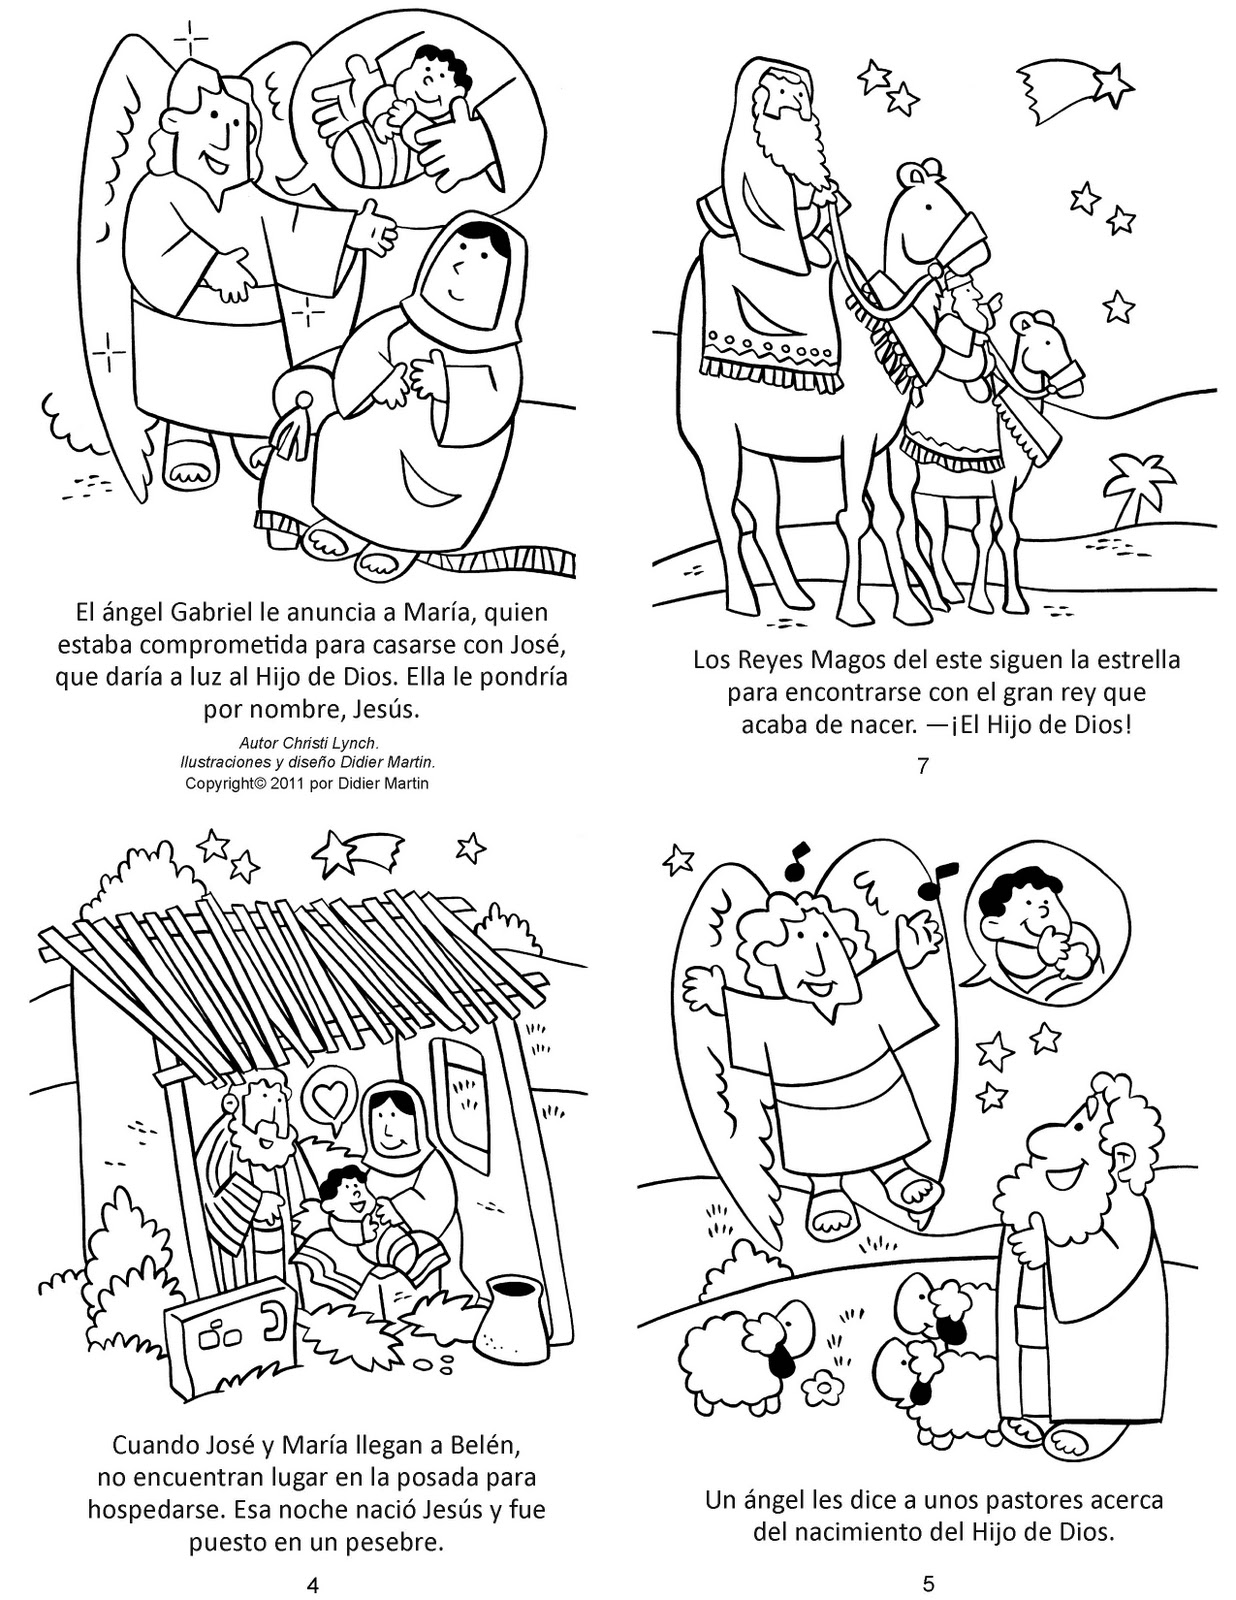 Spanish Culture Coloring Pages Free Coloring Pages